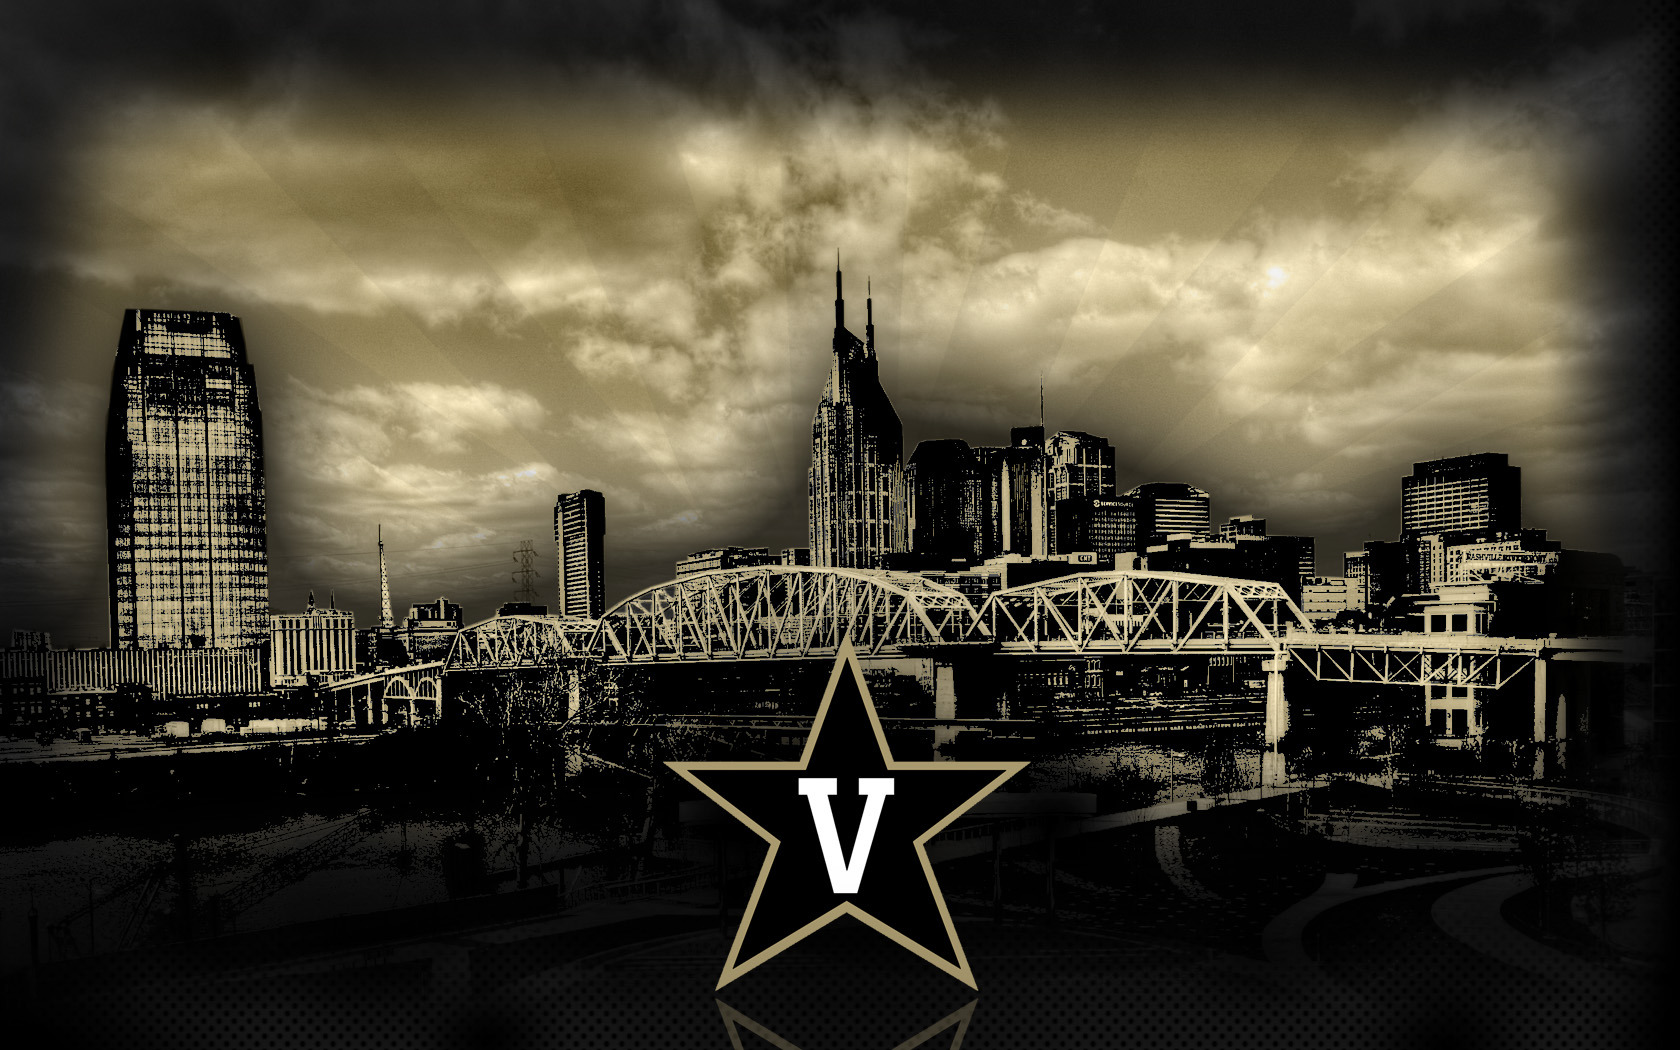 Download Vanderbilt University Wallpaper Gallery